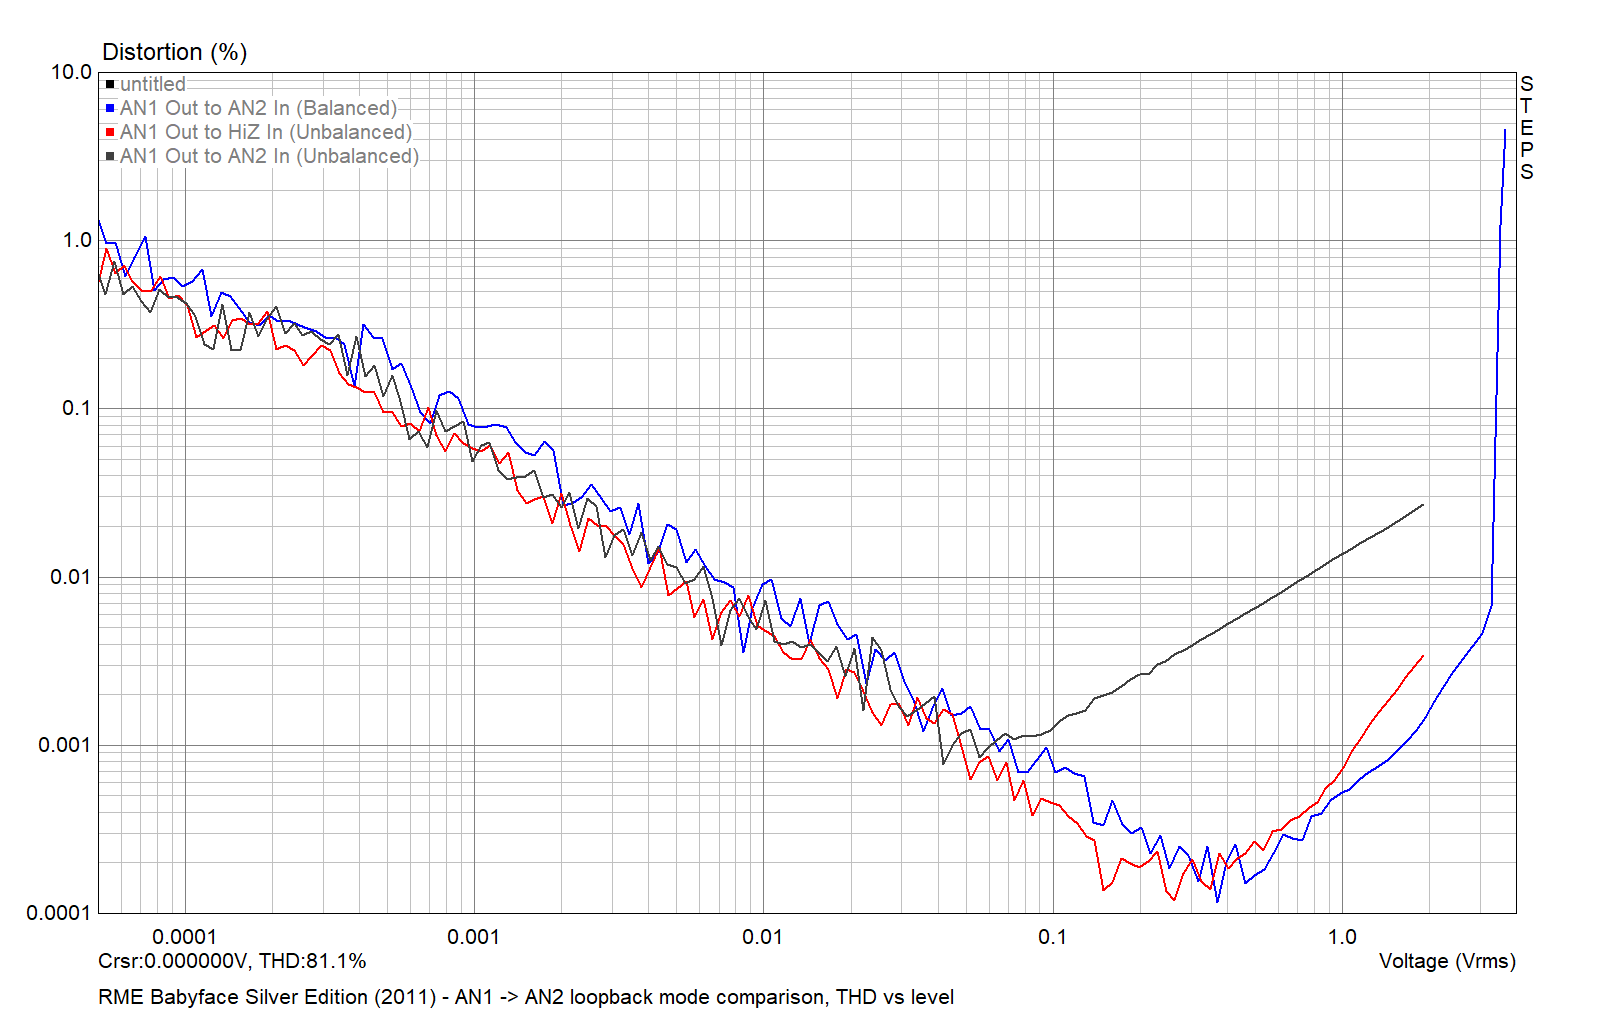 RME Babyface Silver Edition 2011 - AN1 to AN2 mode comparison, THD vs level 2021-04-01.png